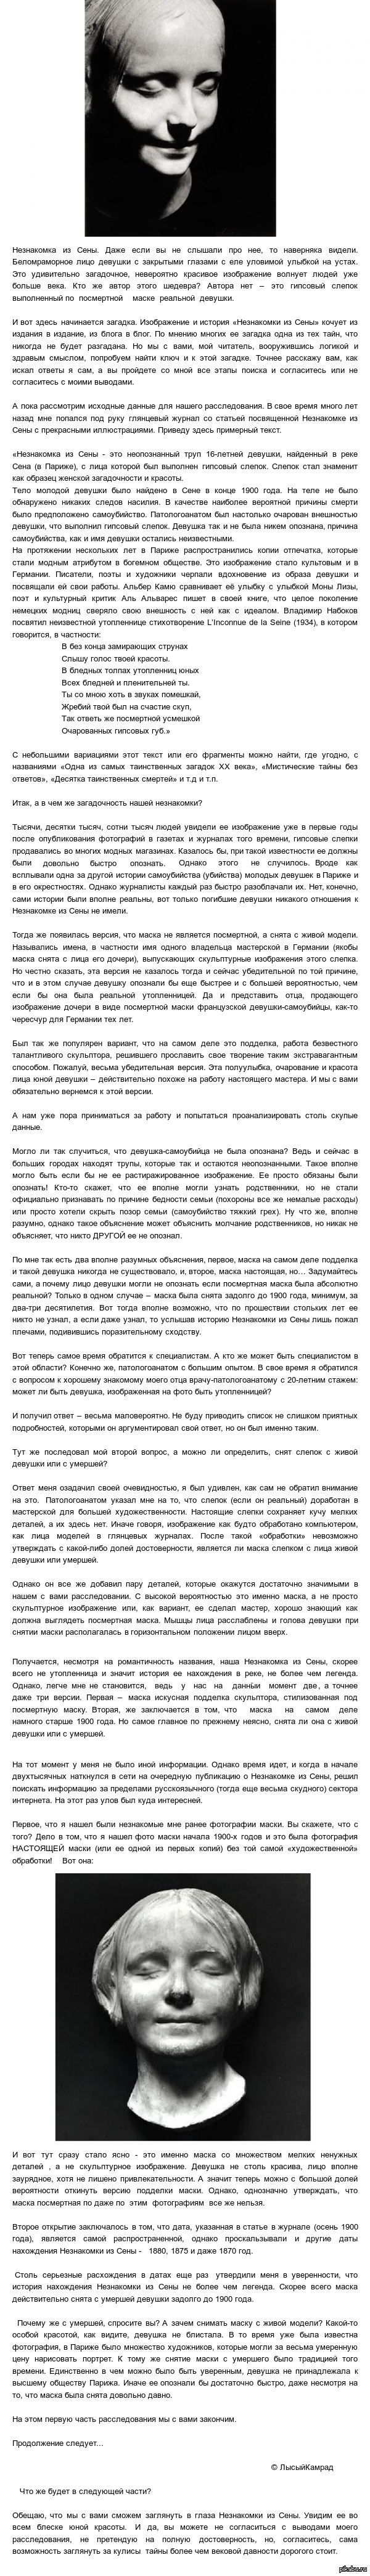 http://cs5.pikabu.ru/post_img/2015/10/23/6/1445594307_430400115.png